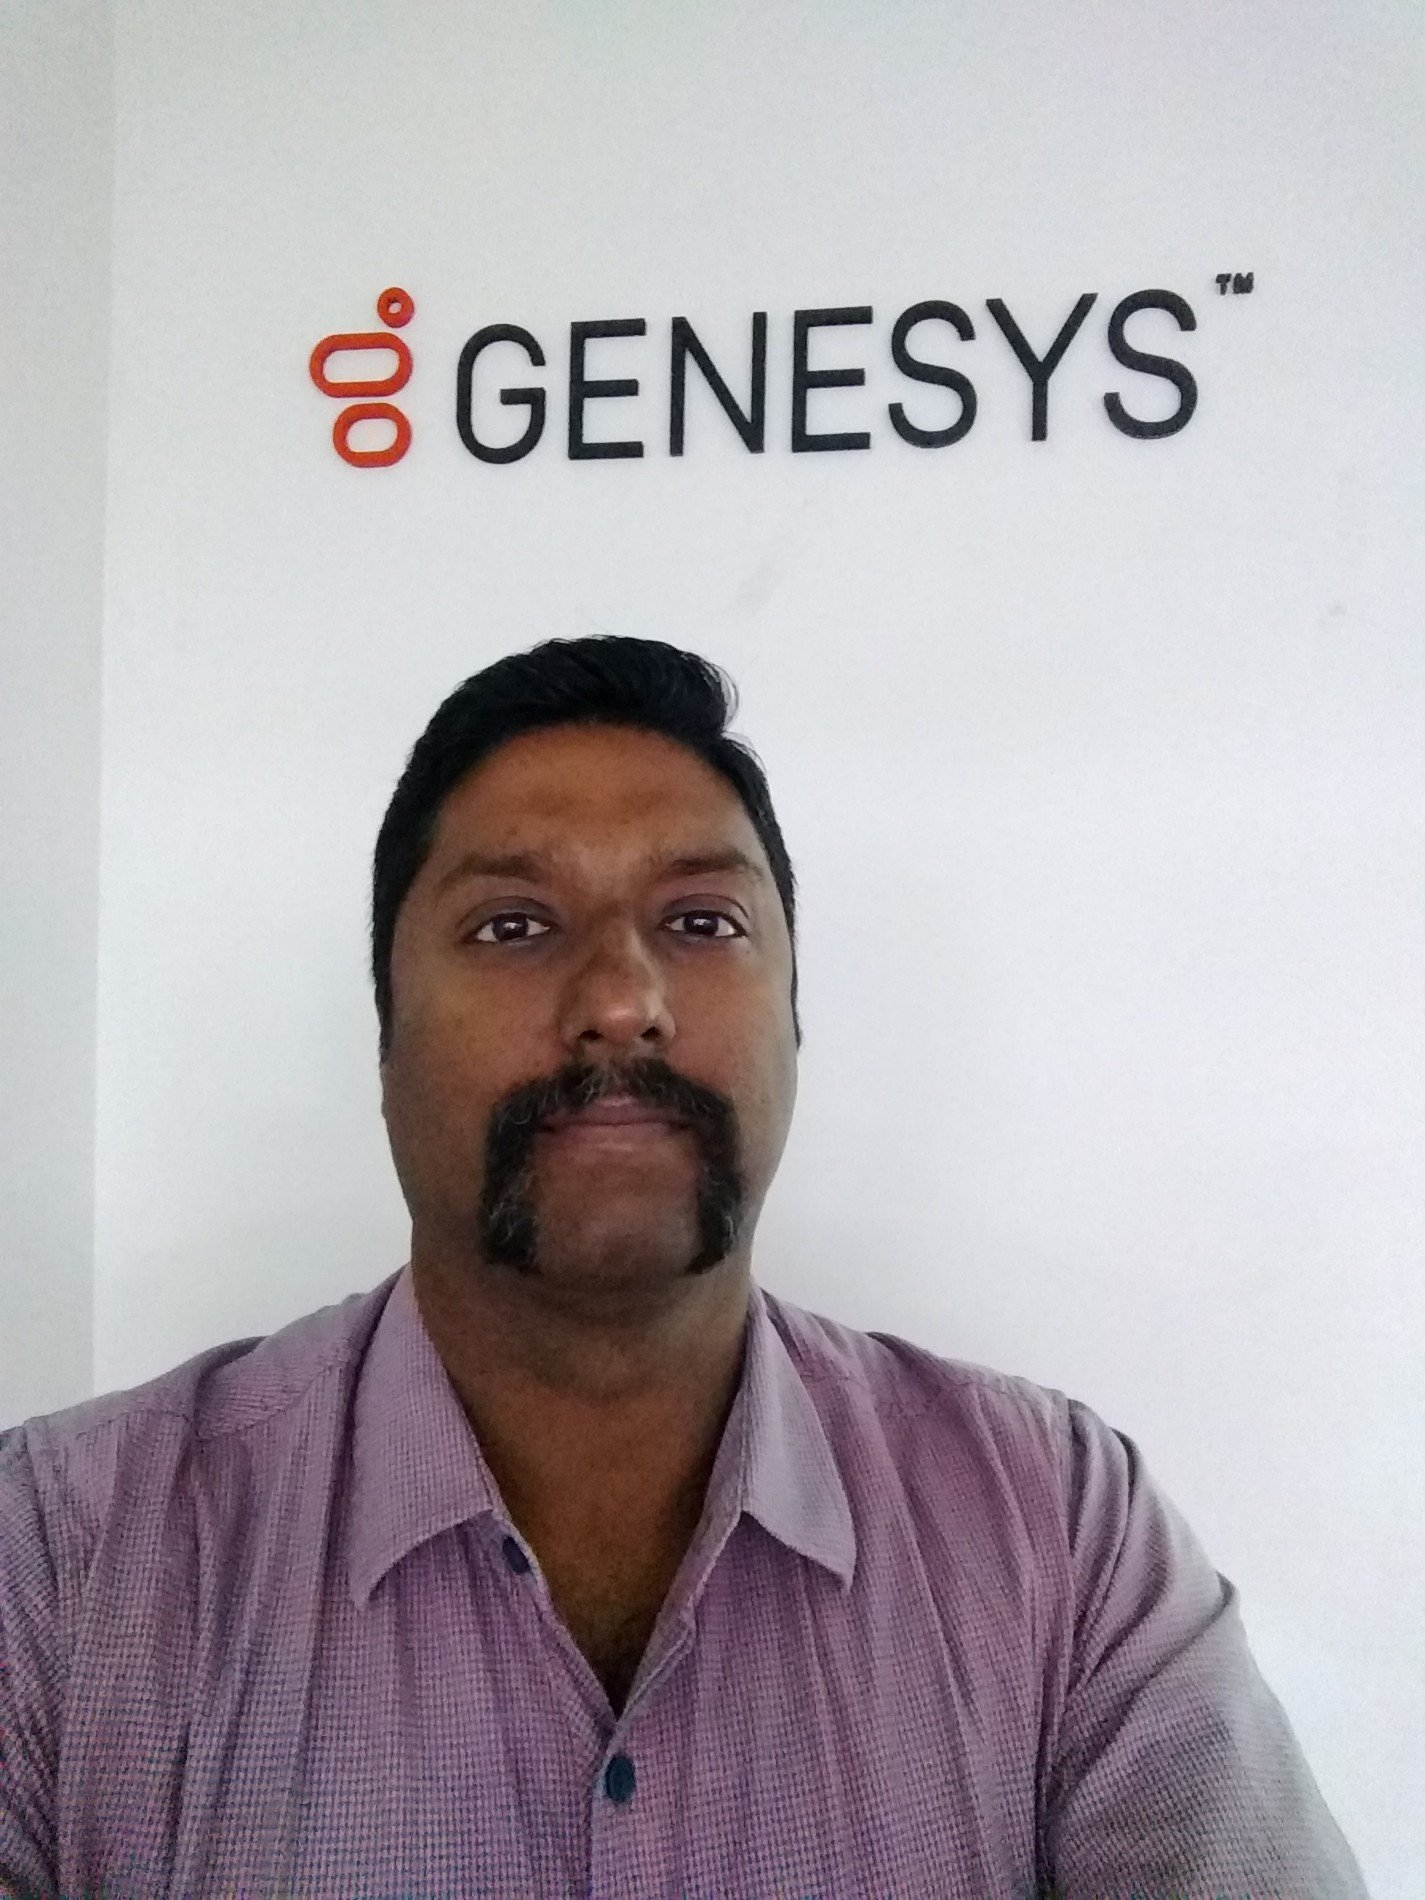 Checked in at Genesys Telecom Labs